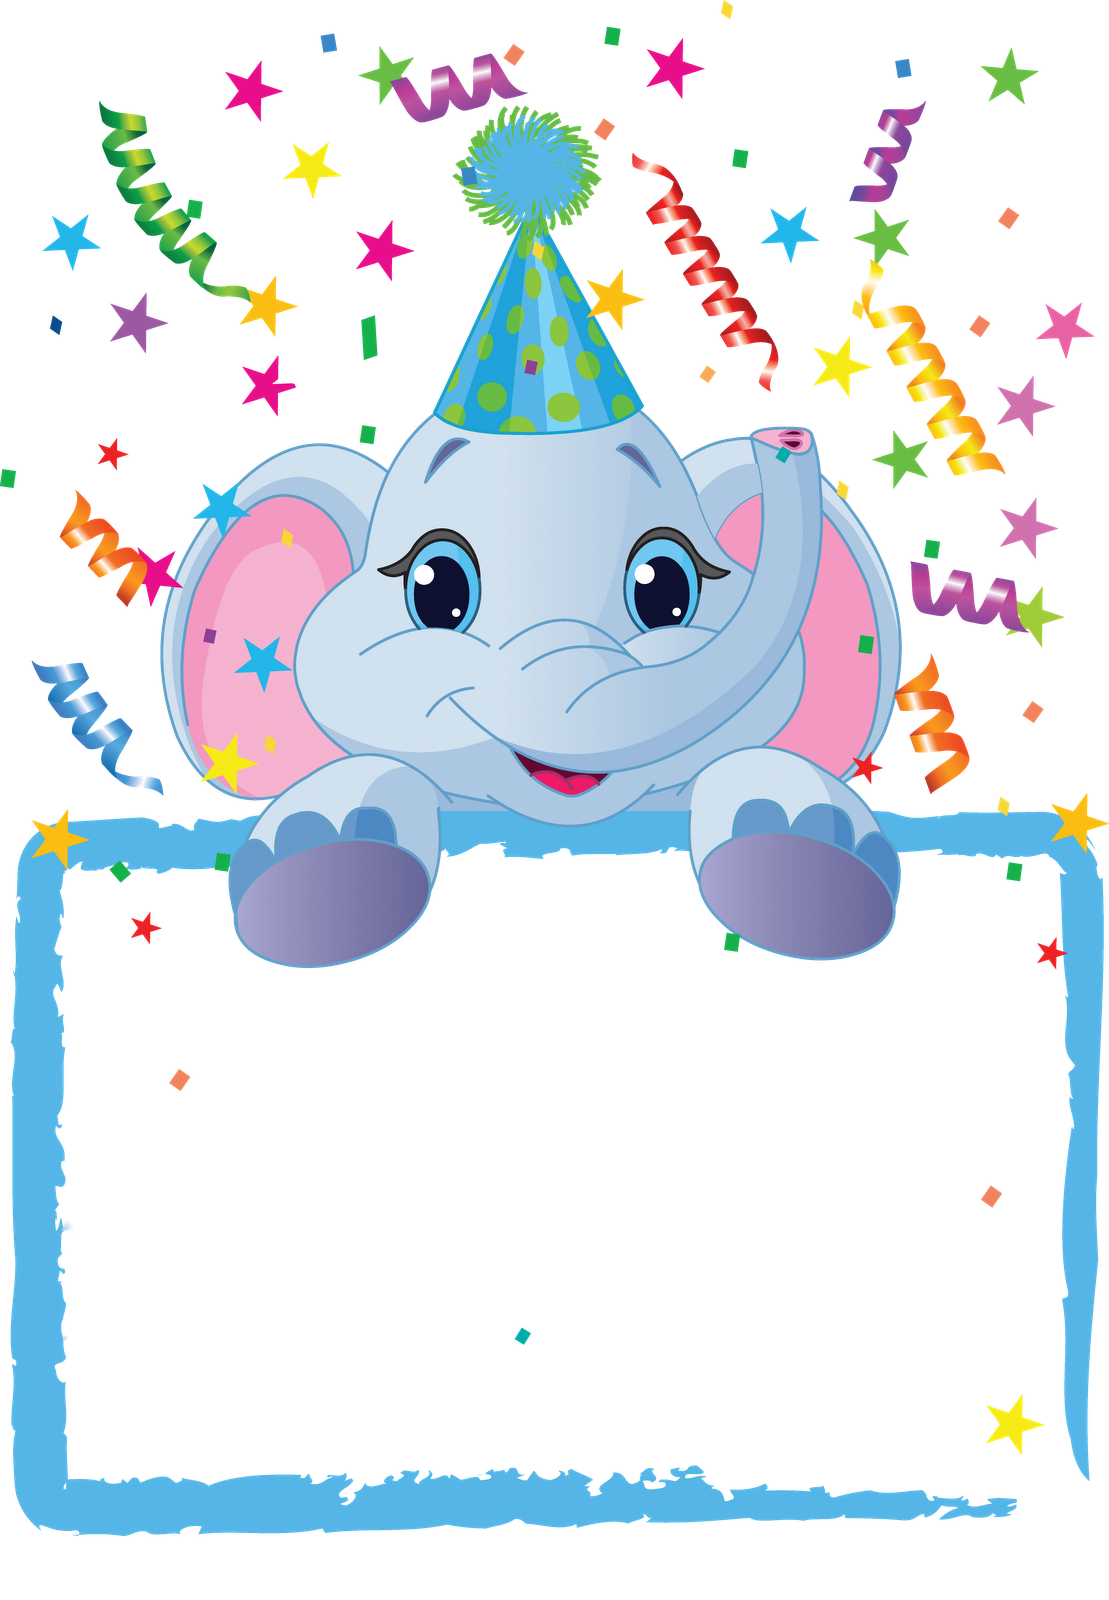 birthday png | MARCOS GRATIS PARA FOTOS: HAPPY BIRTHDAY, FELIZ ...